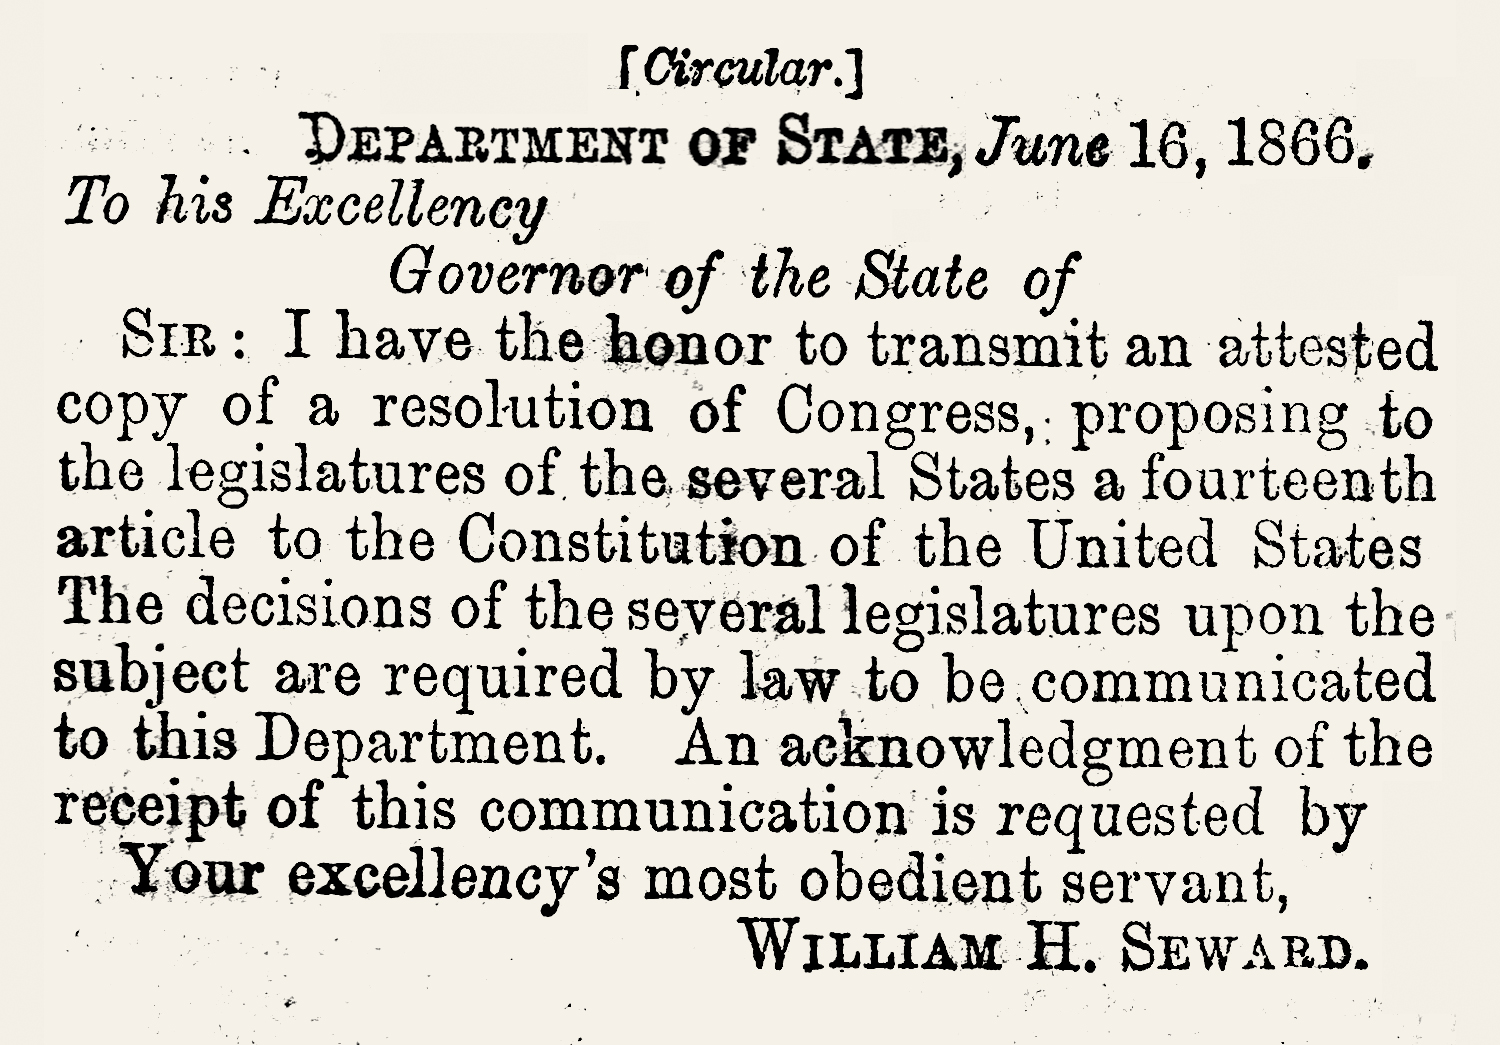 Letter of Transmittal of 14th Amemdment